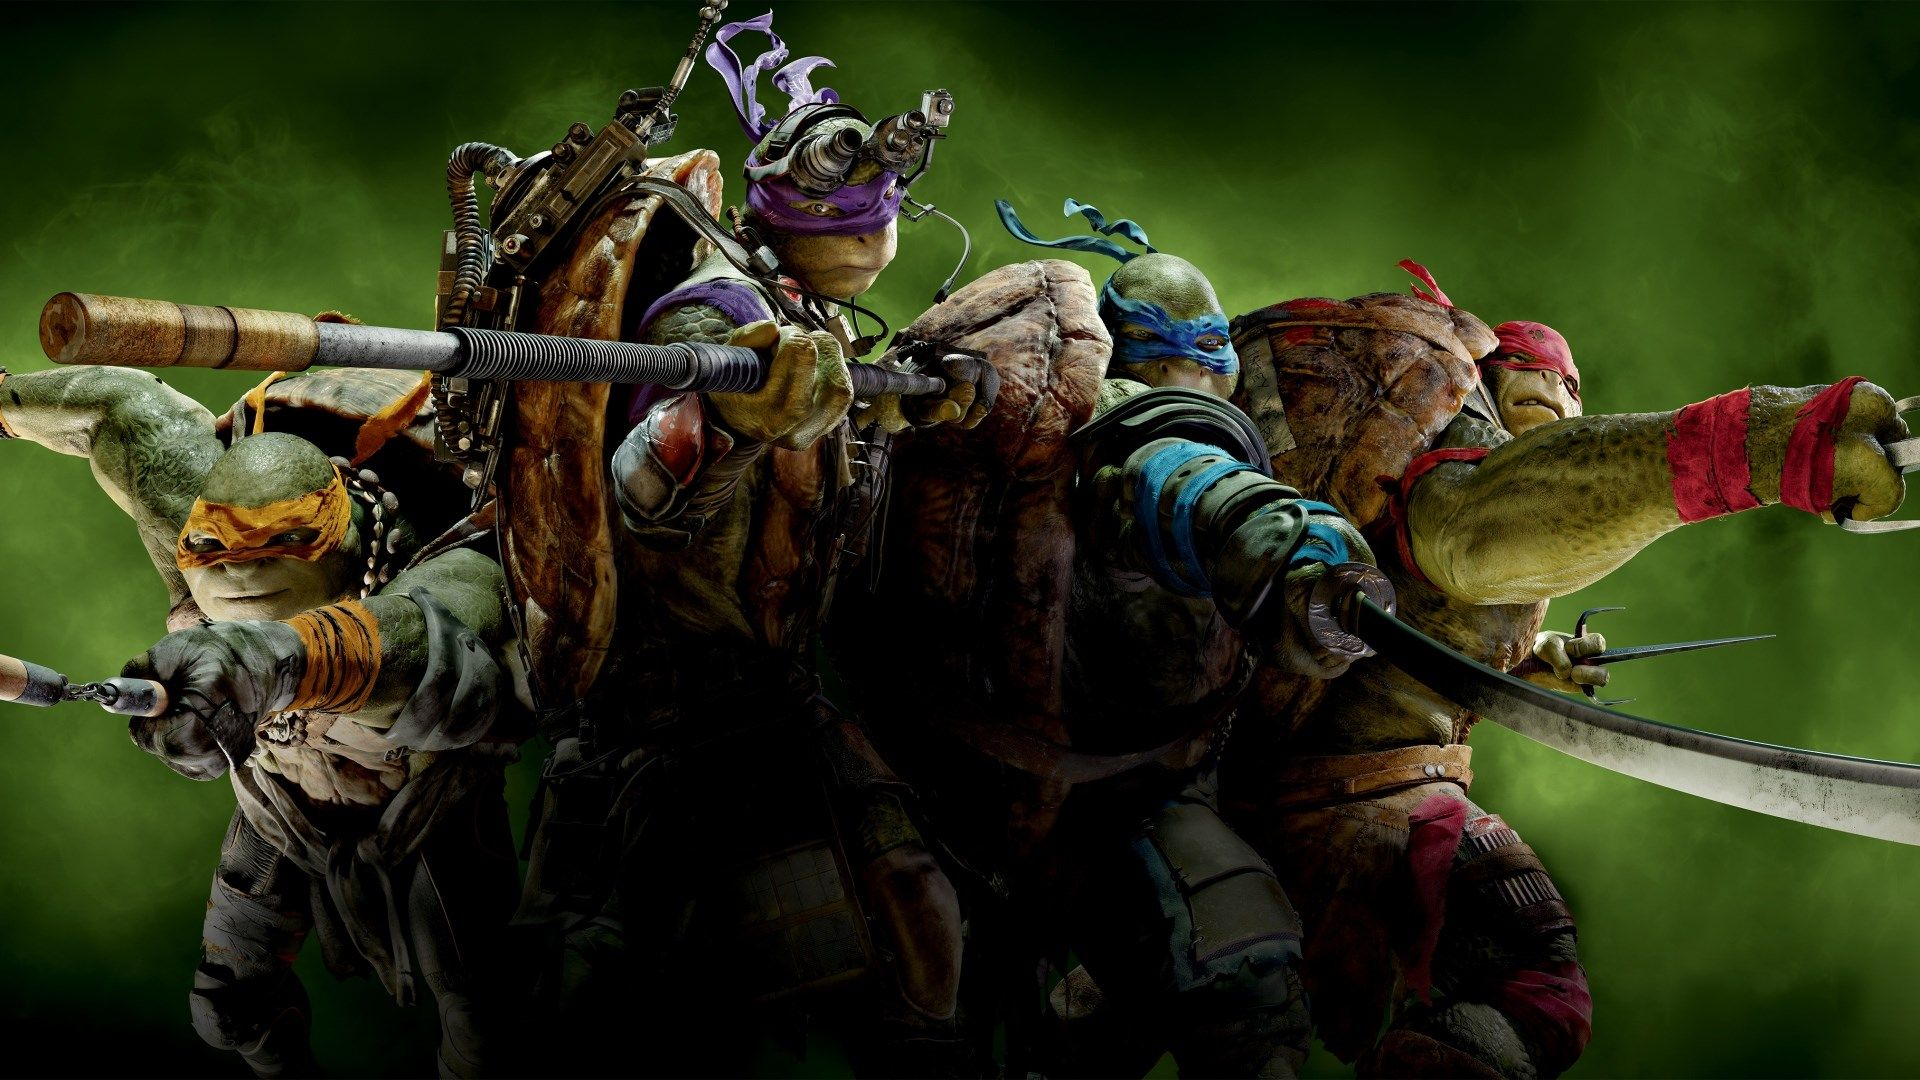 Free Photos Tmnt Wallpapers Hd